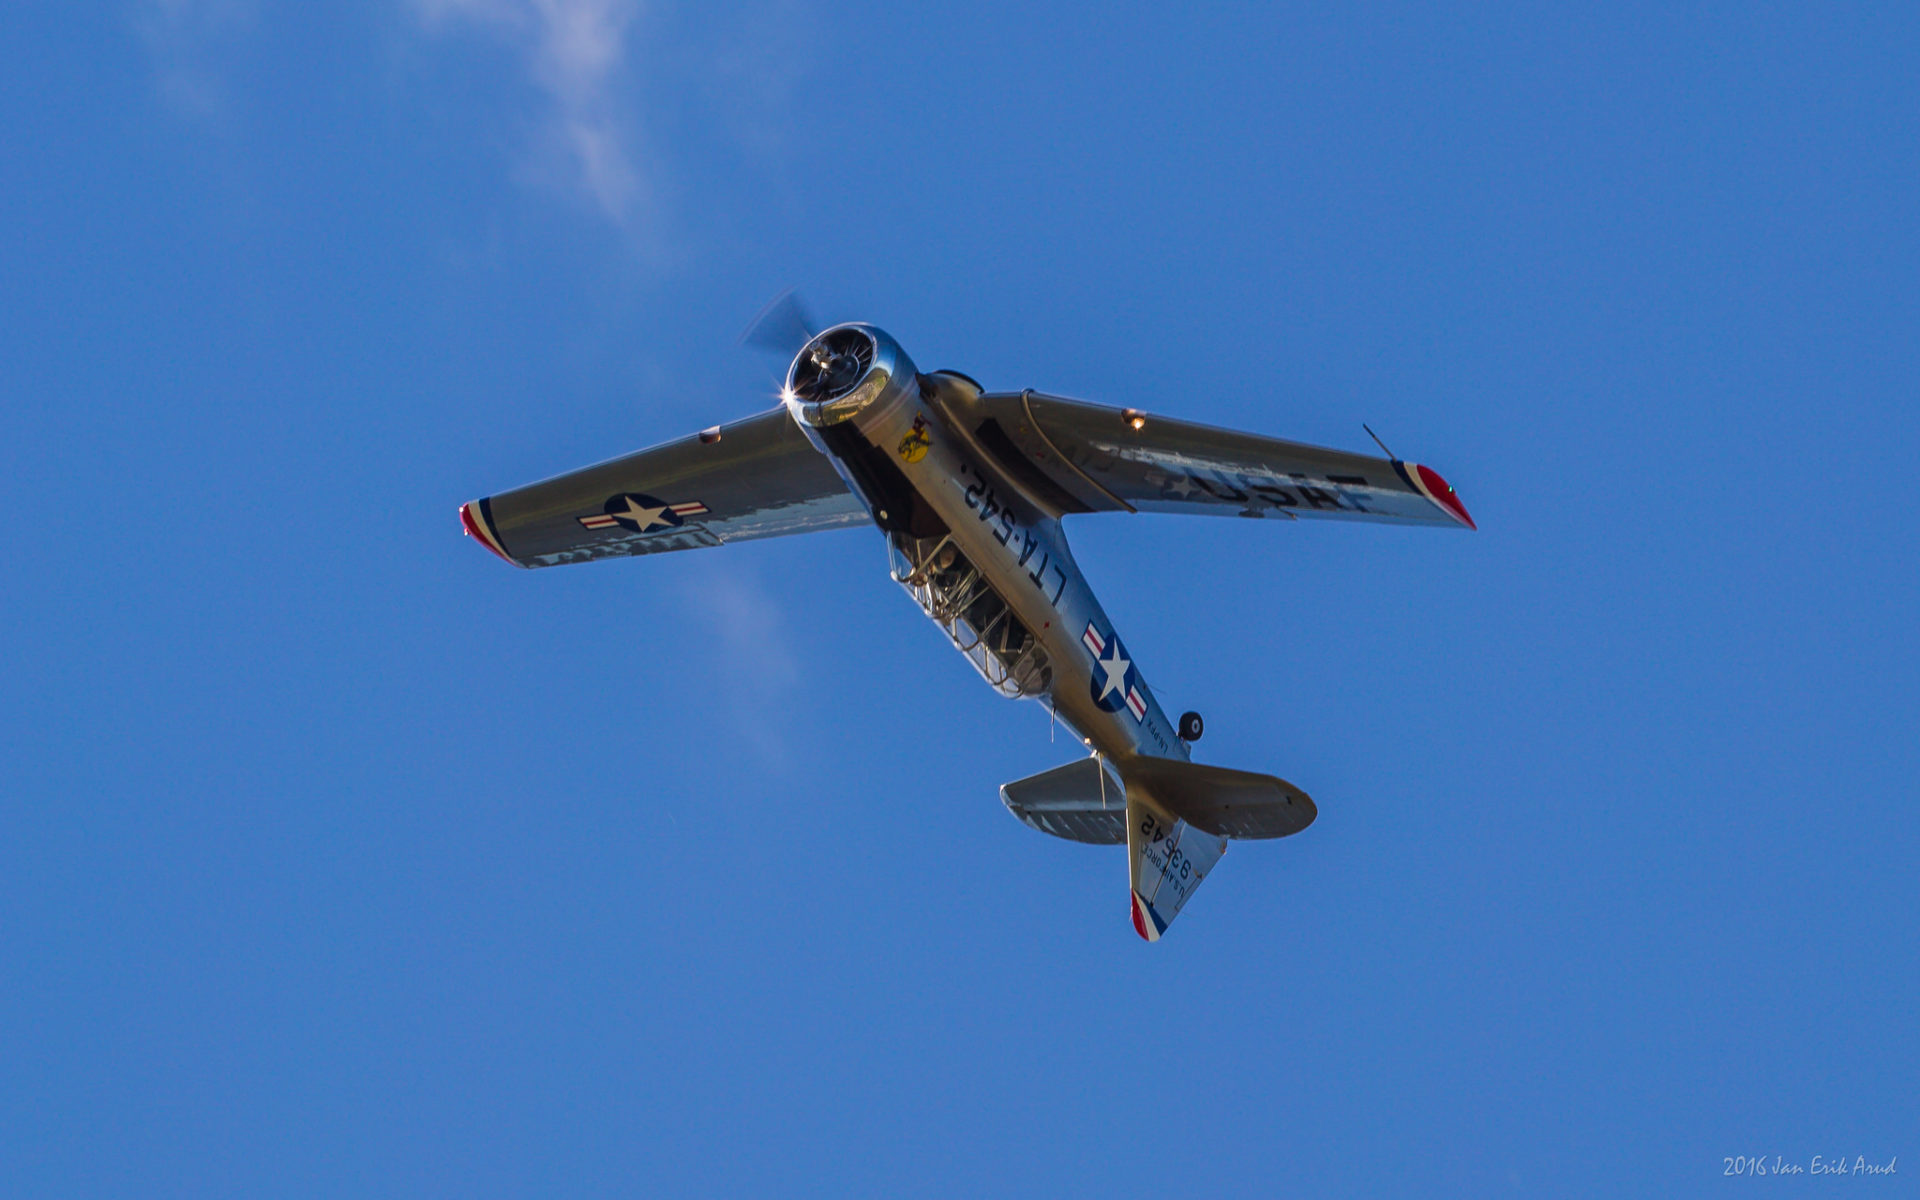 Harvard texan flight krigsfly rundflyvning